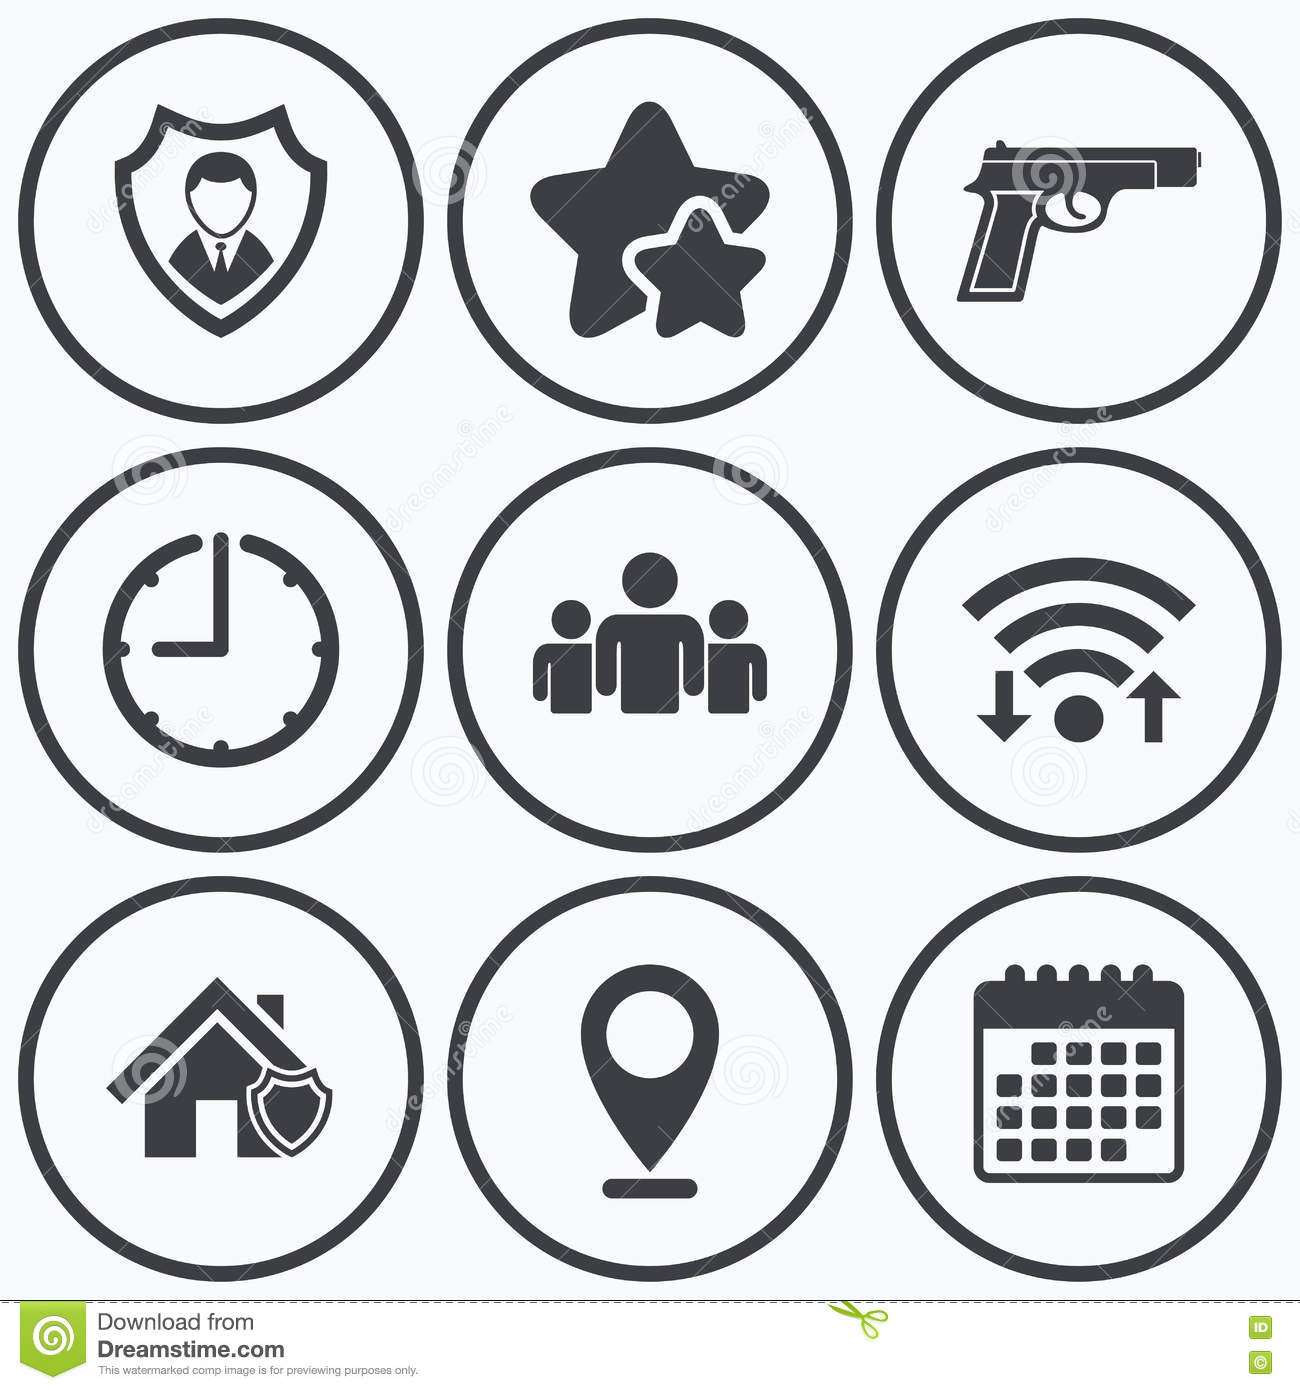 Security agency icons home shield protection stock vector security agency icons home shield protection biocorpaavc Images